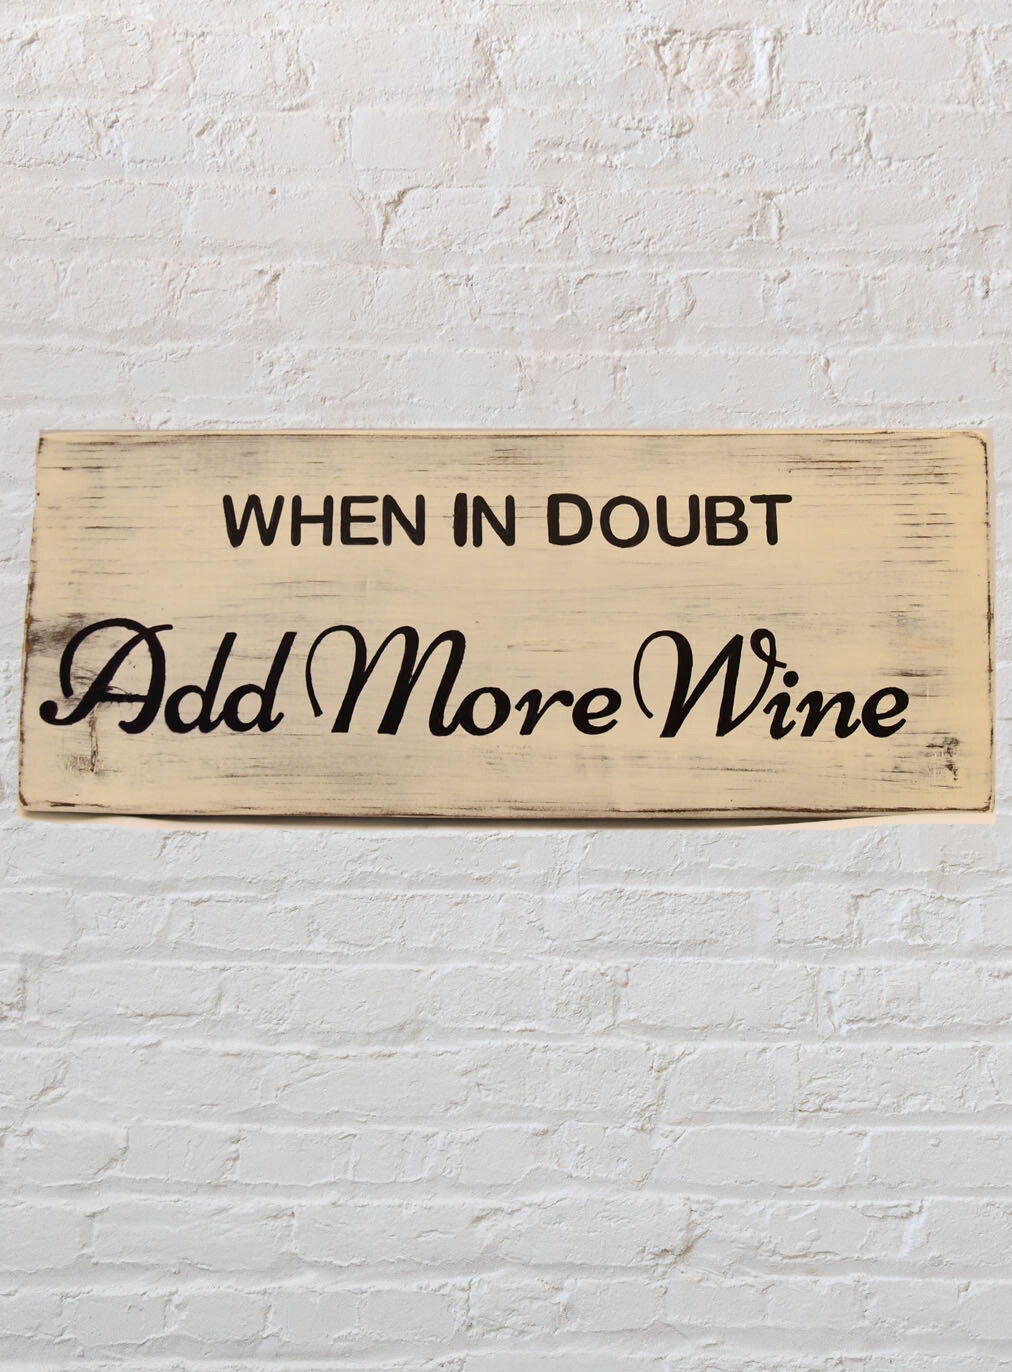 When in Doubt, Add More Wine